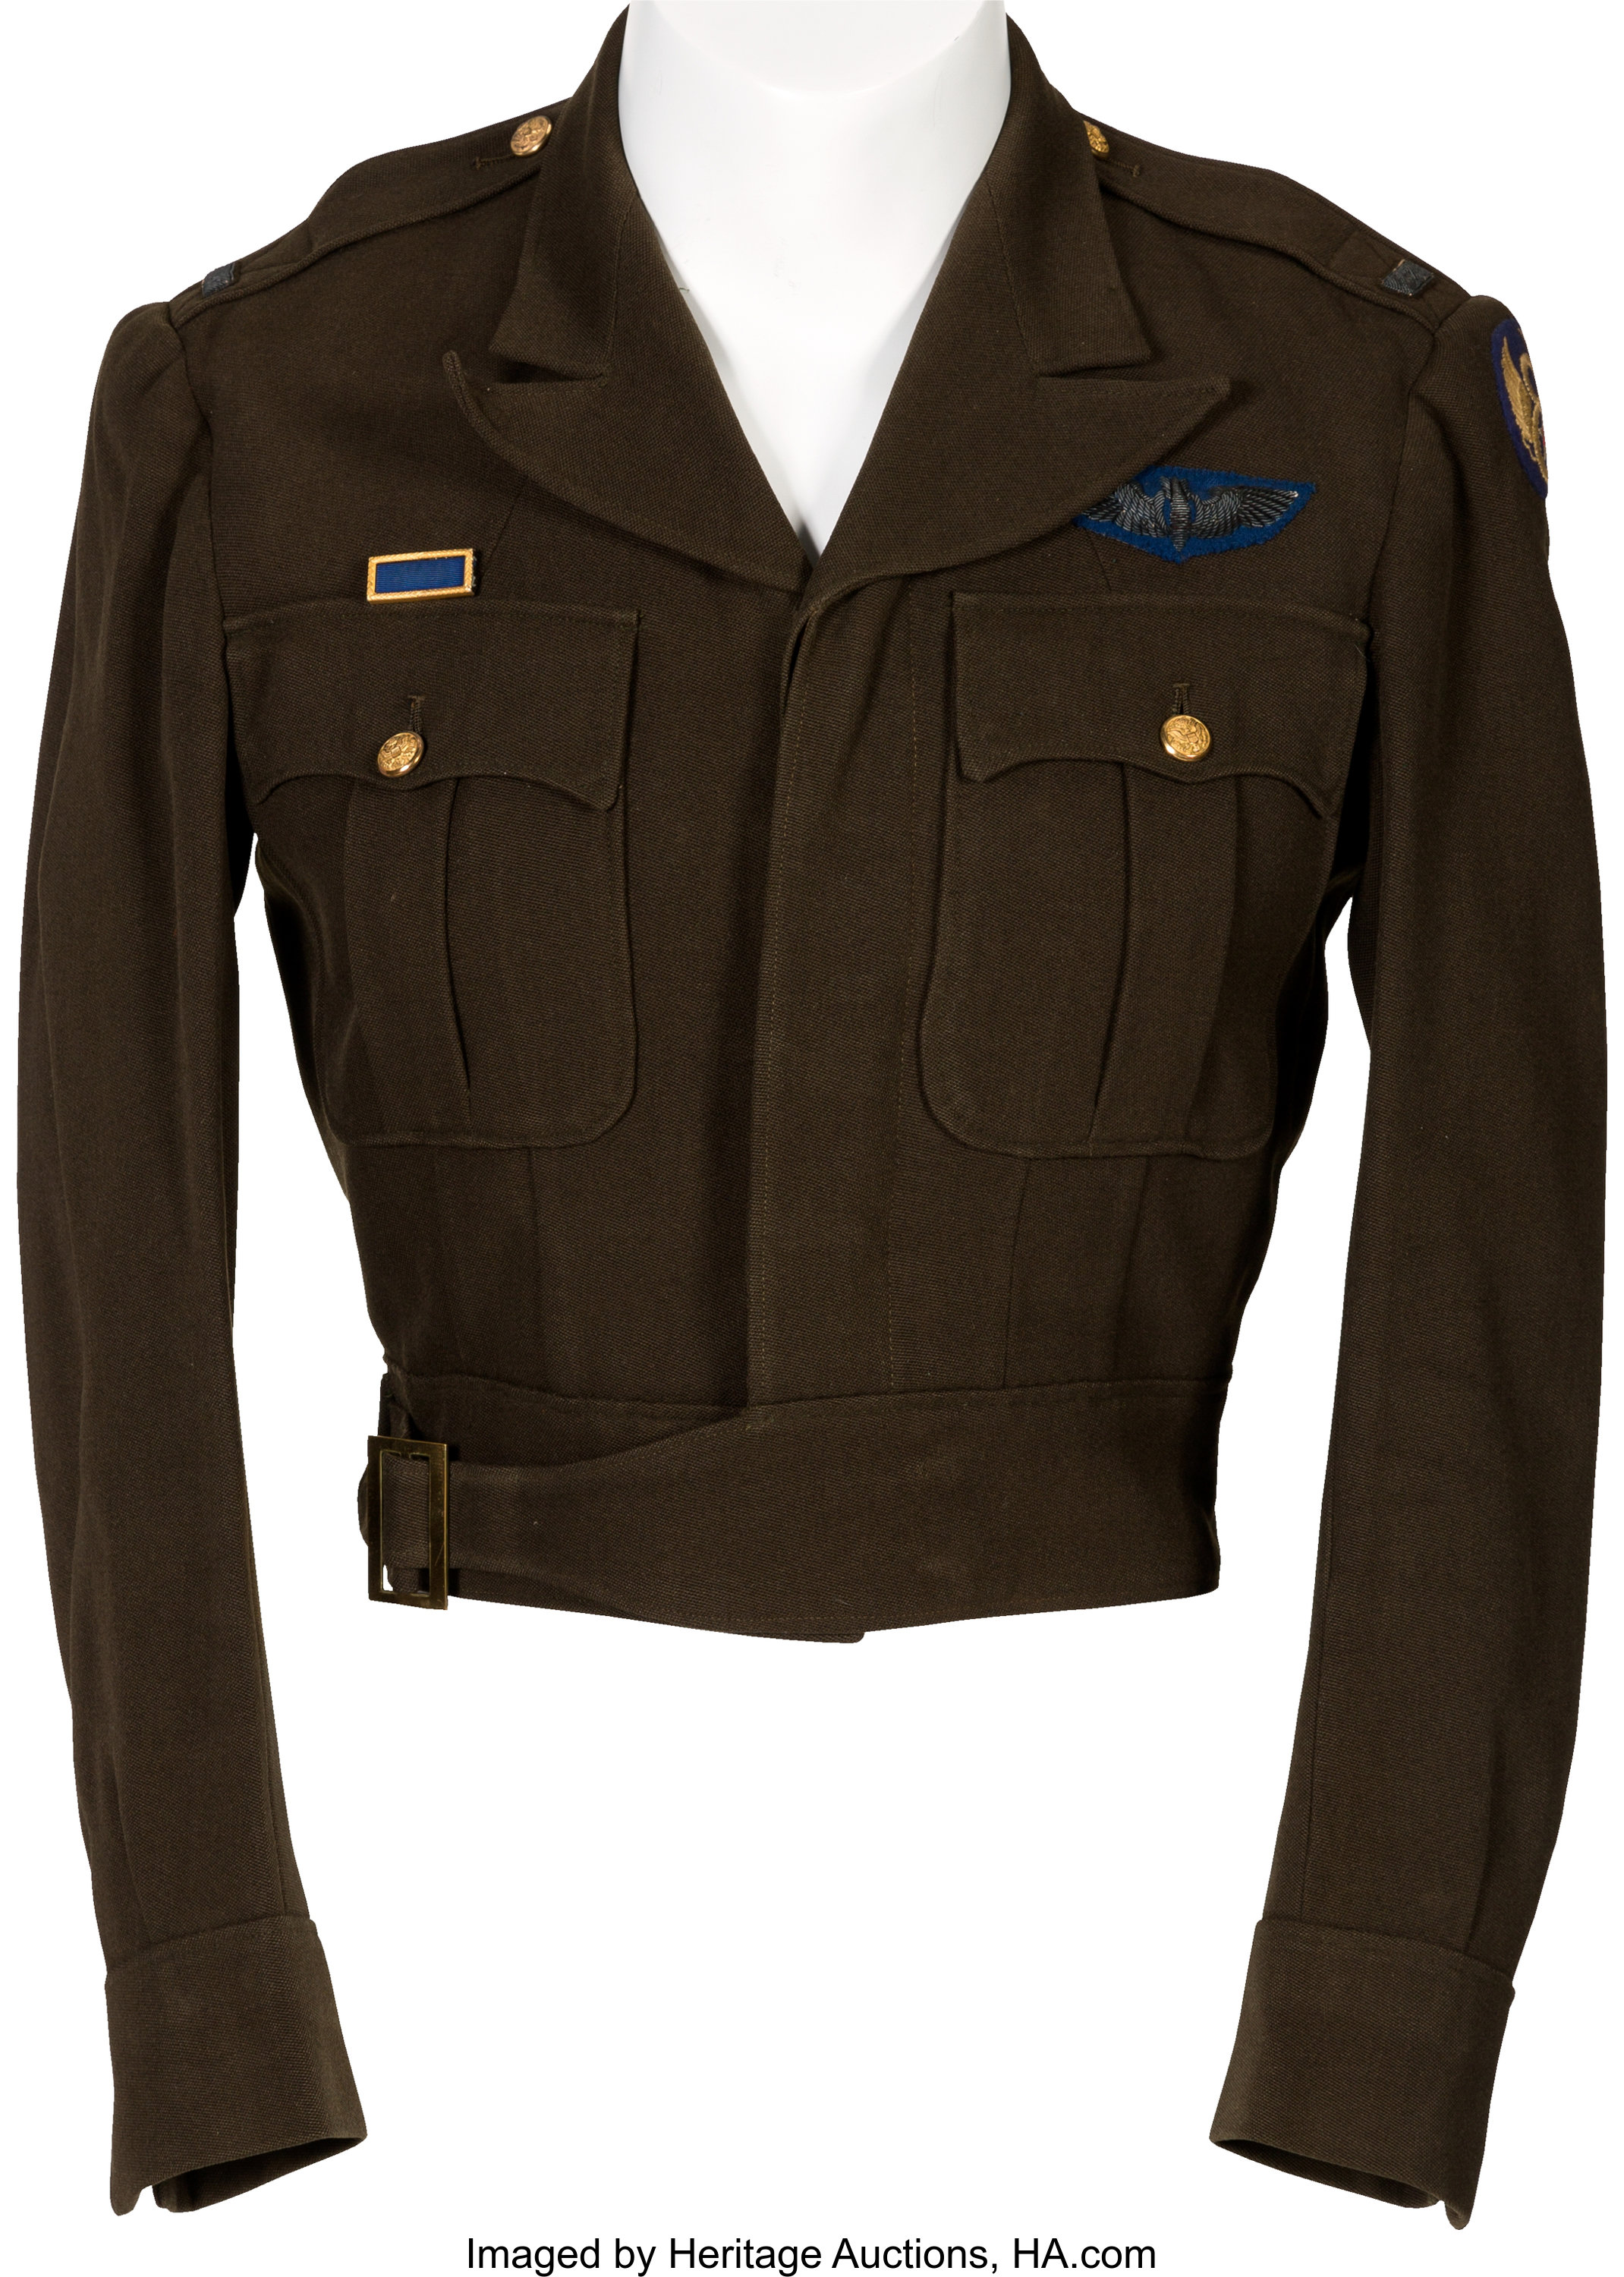 Fantastic English Made Ike Jacket Identified to Bombardier